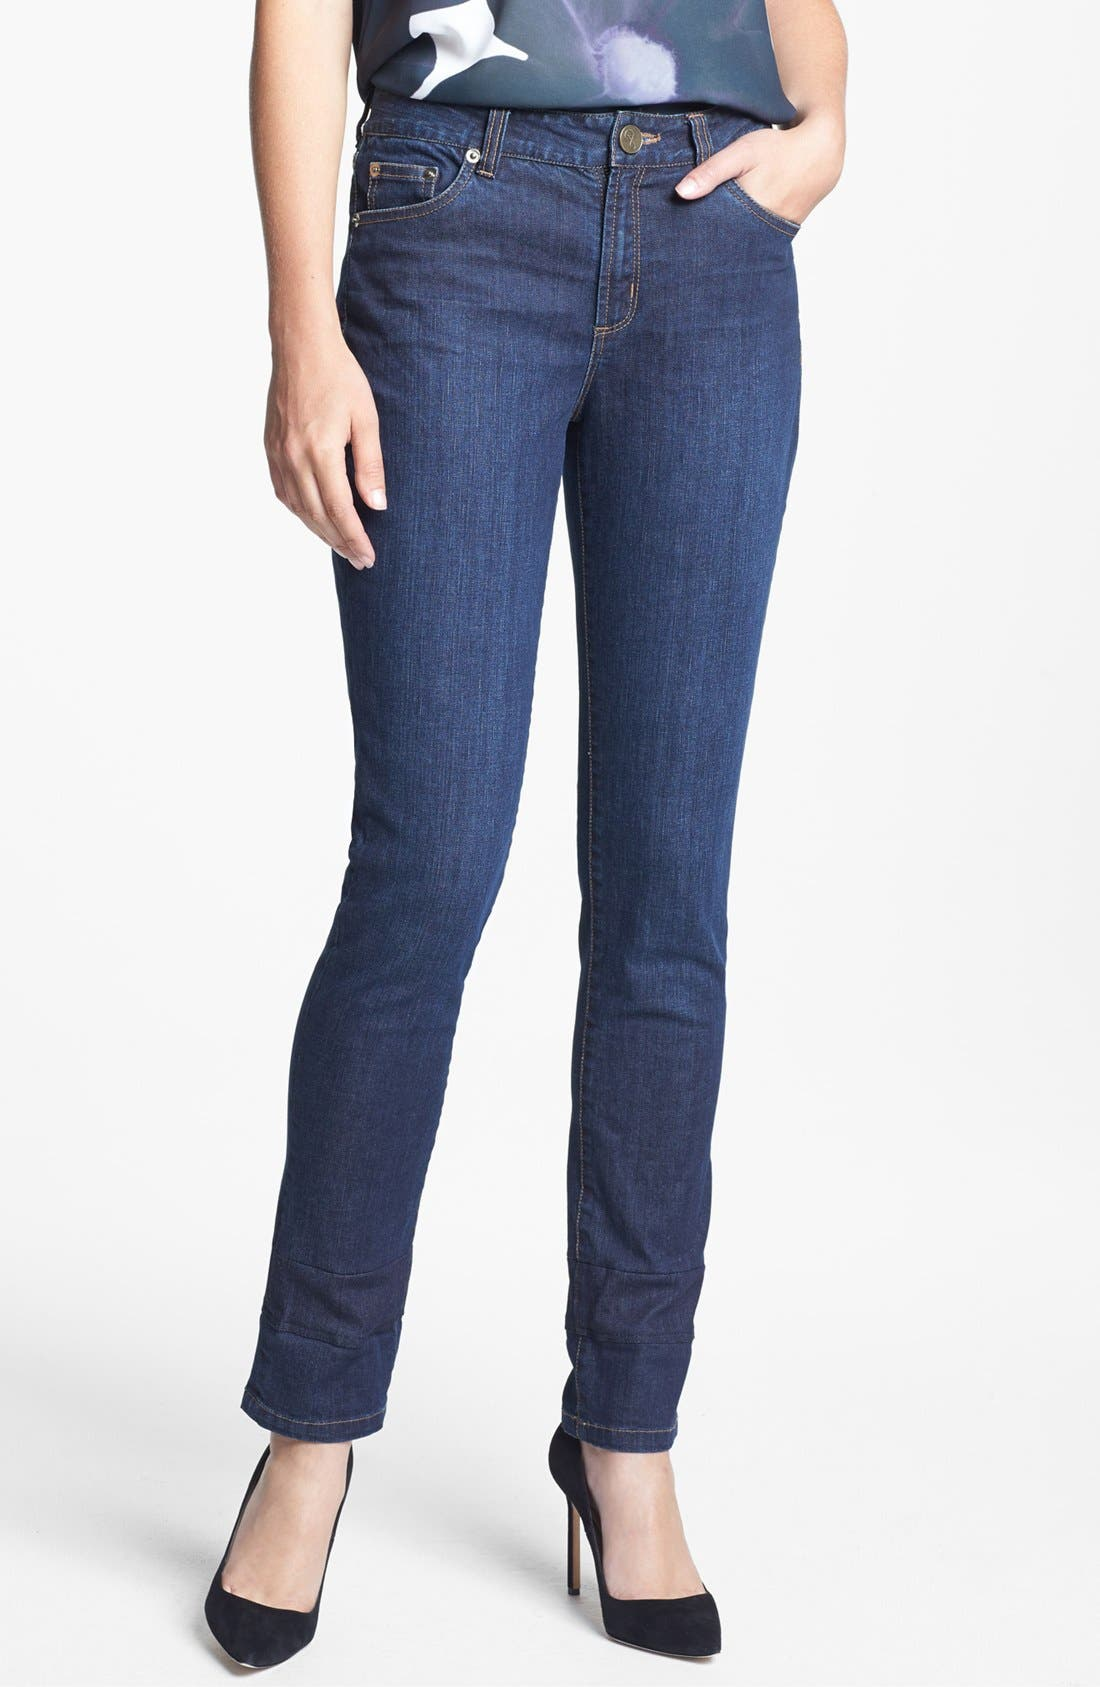 Alternate Image 1 Selected - Adrianna Papell Stretch Denim Jeans